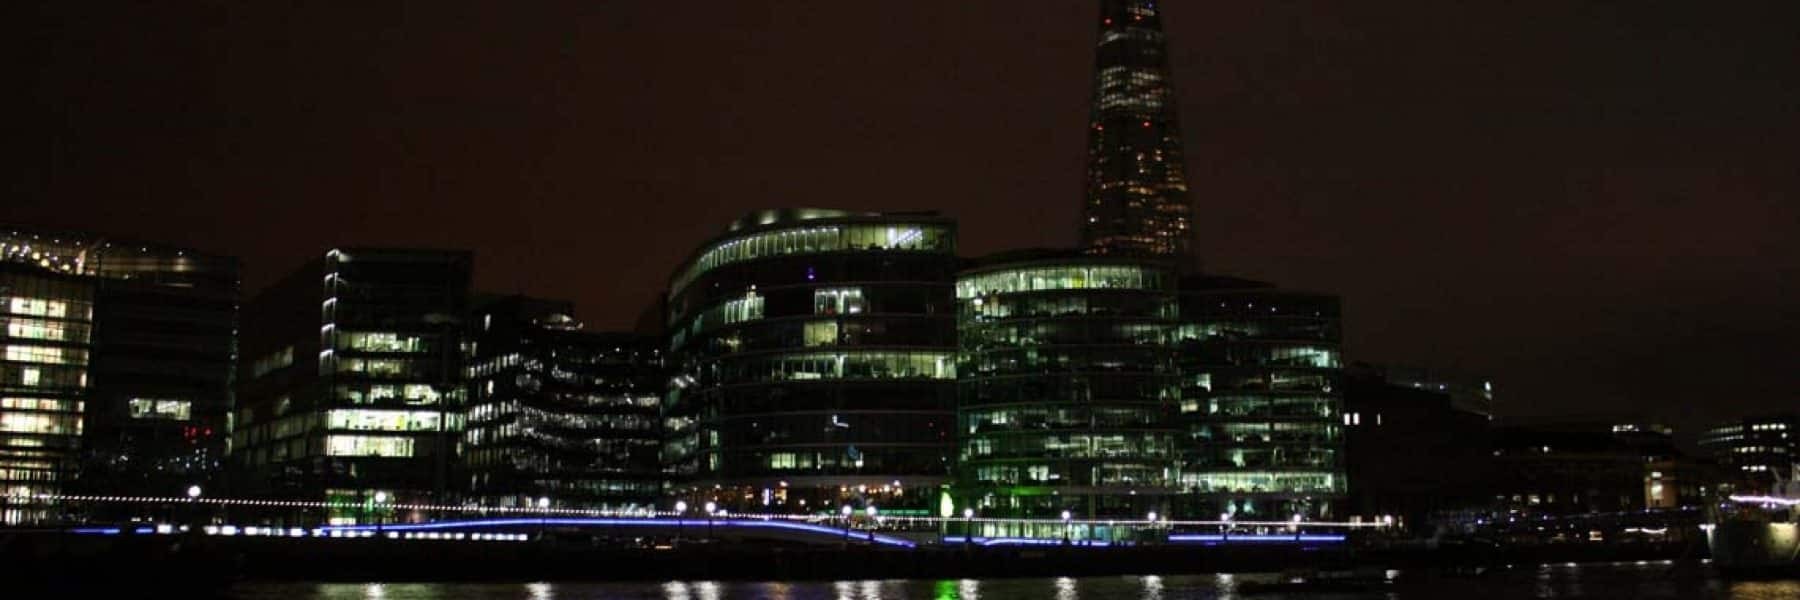 New Year's Eve Cruises, Upper Pool & The Shard | Viscount Cruises